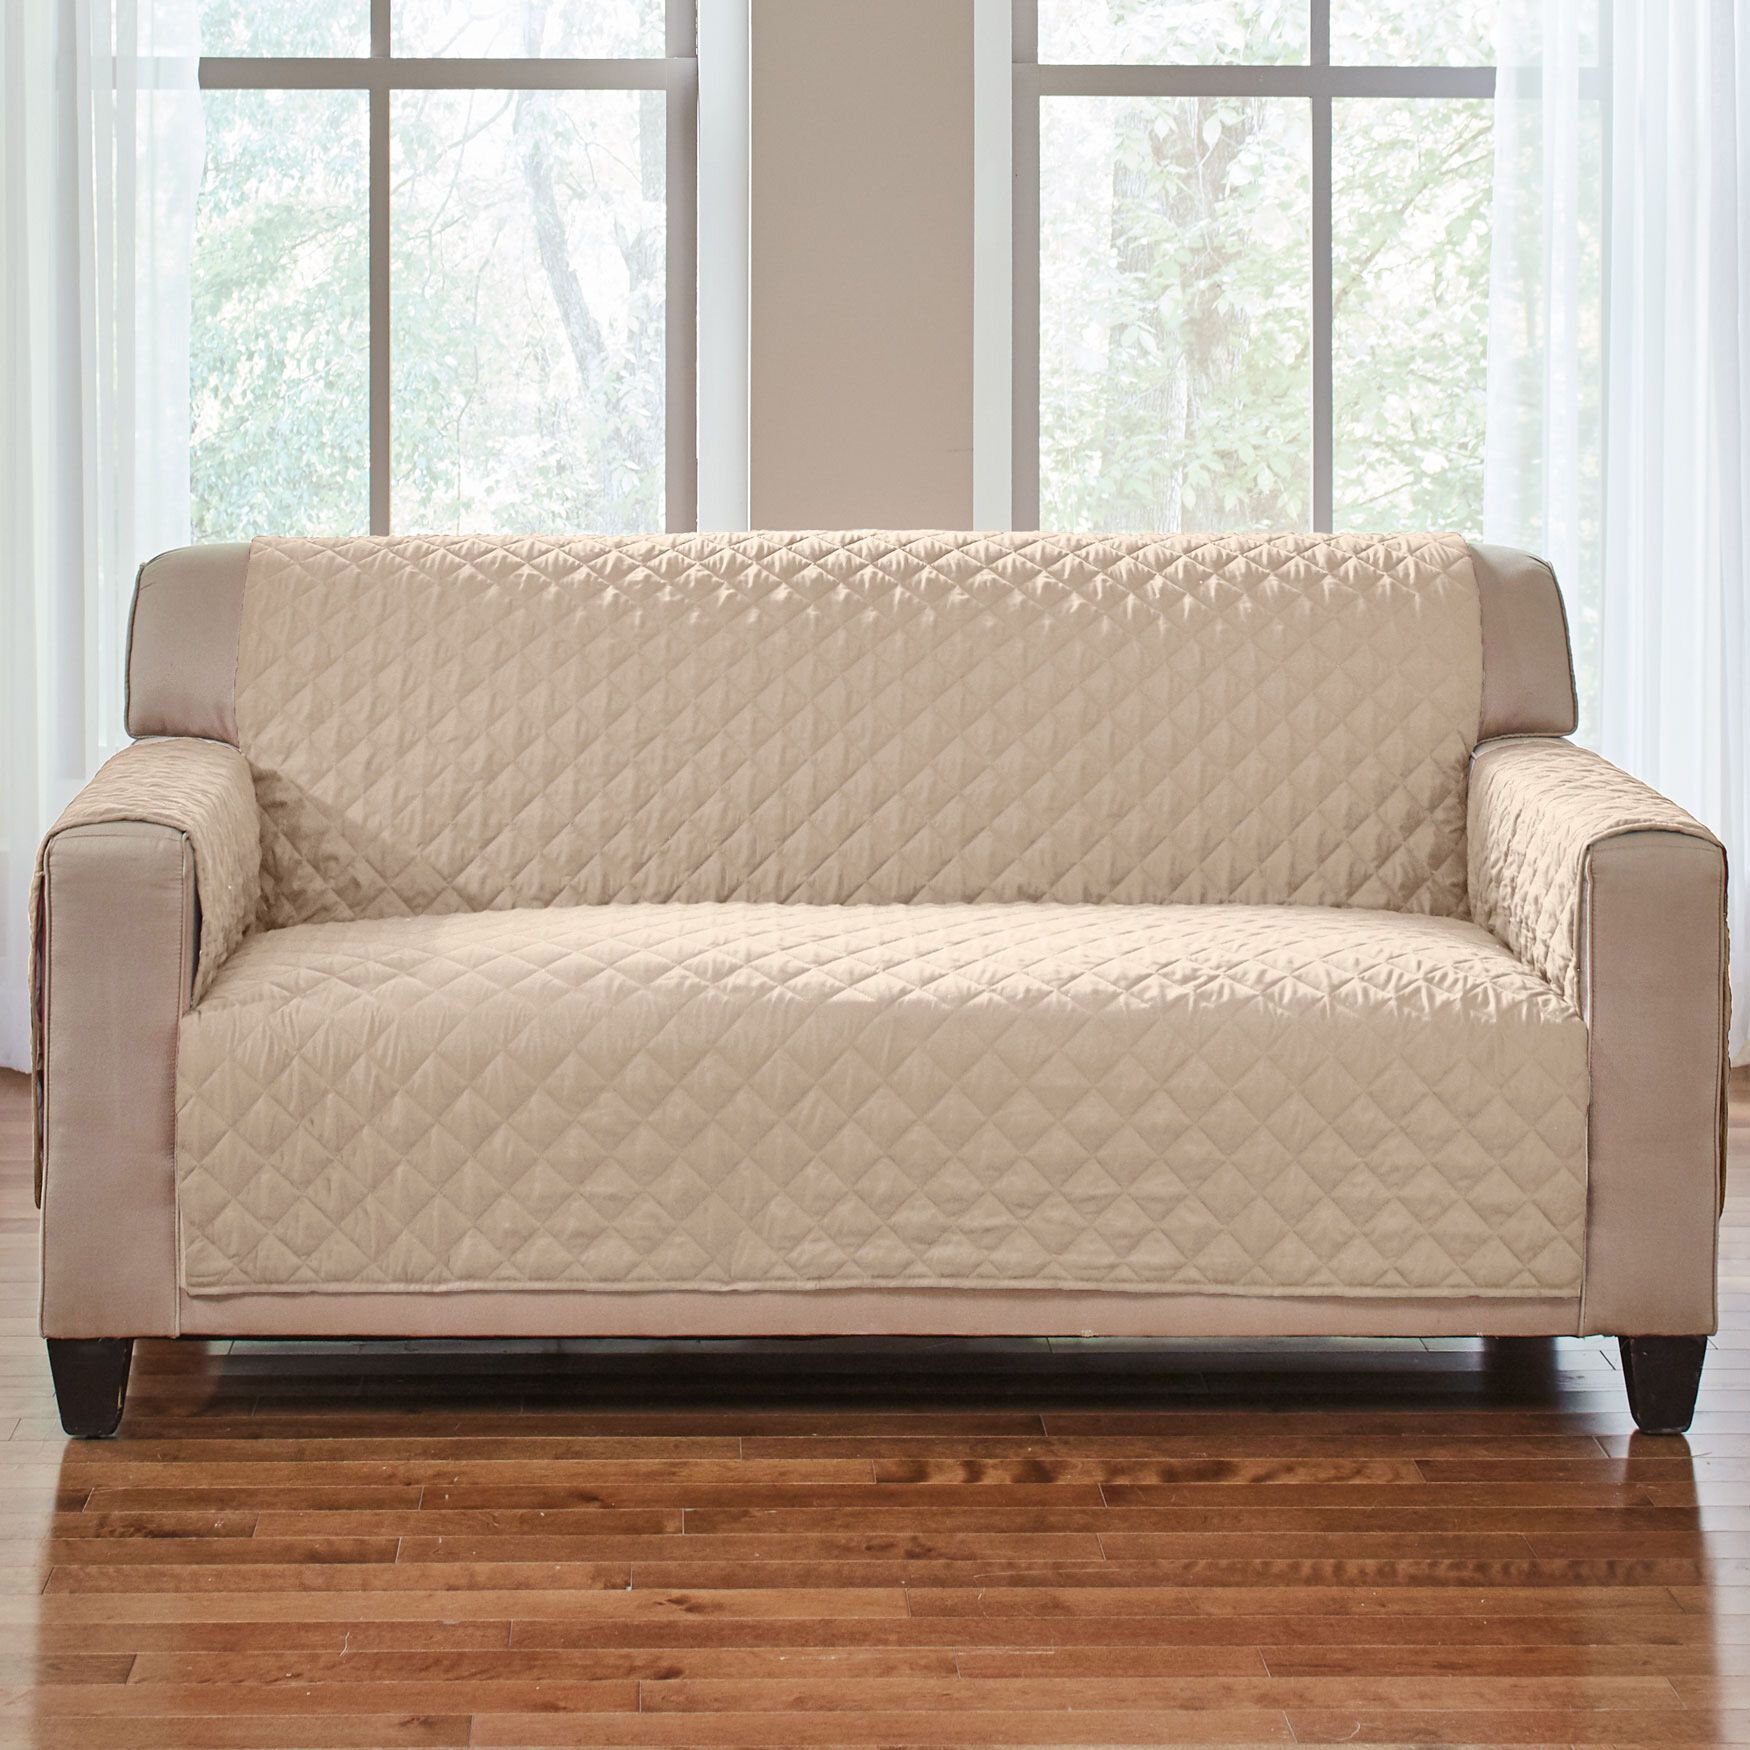 slipcovers sofa loveseat covers brylane home rh brylanehome com